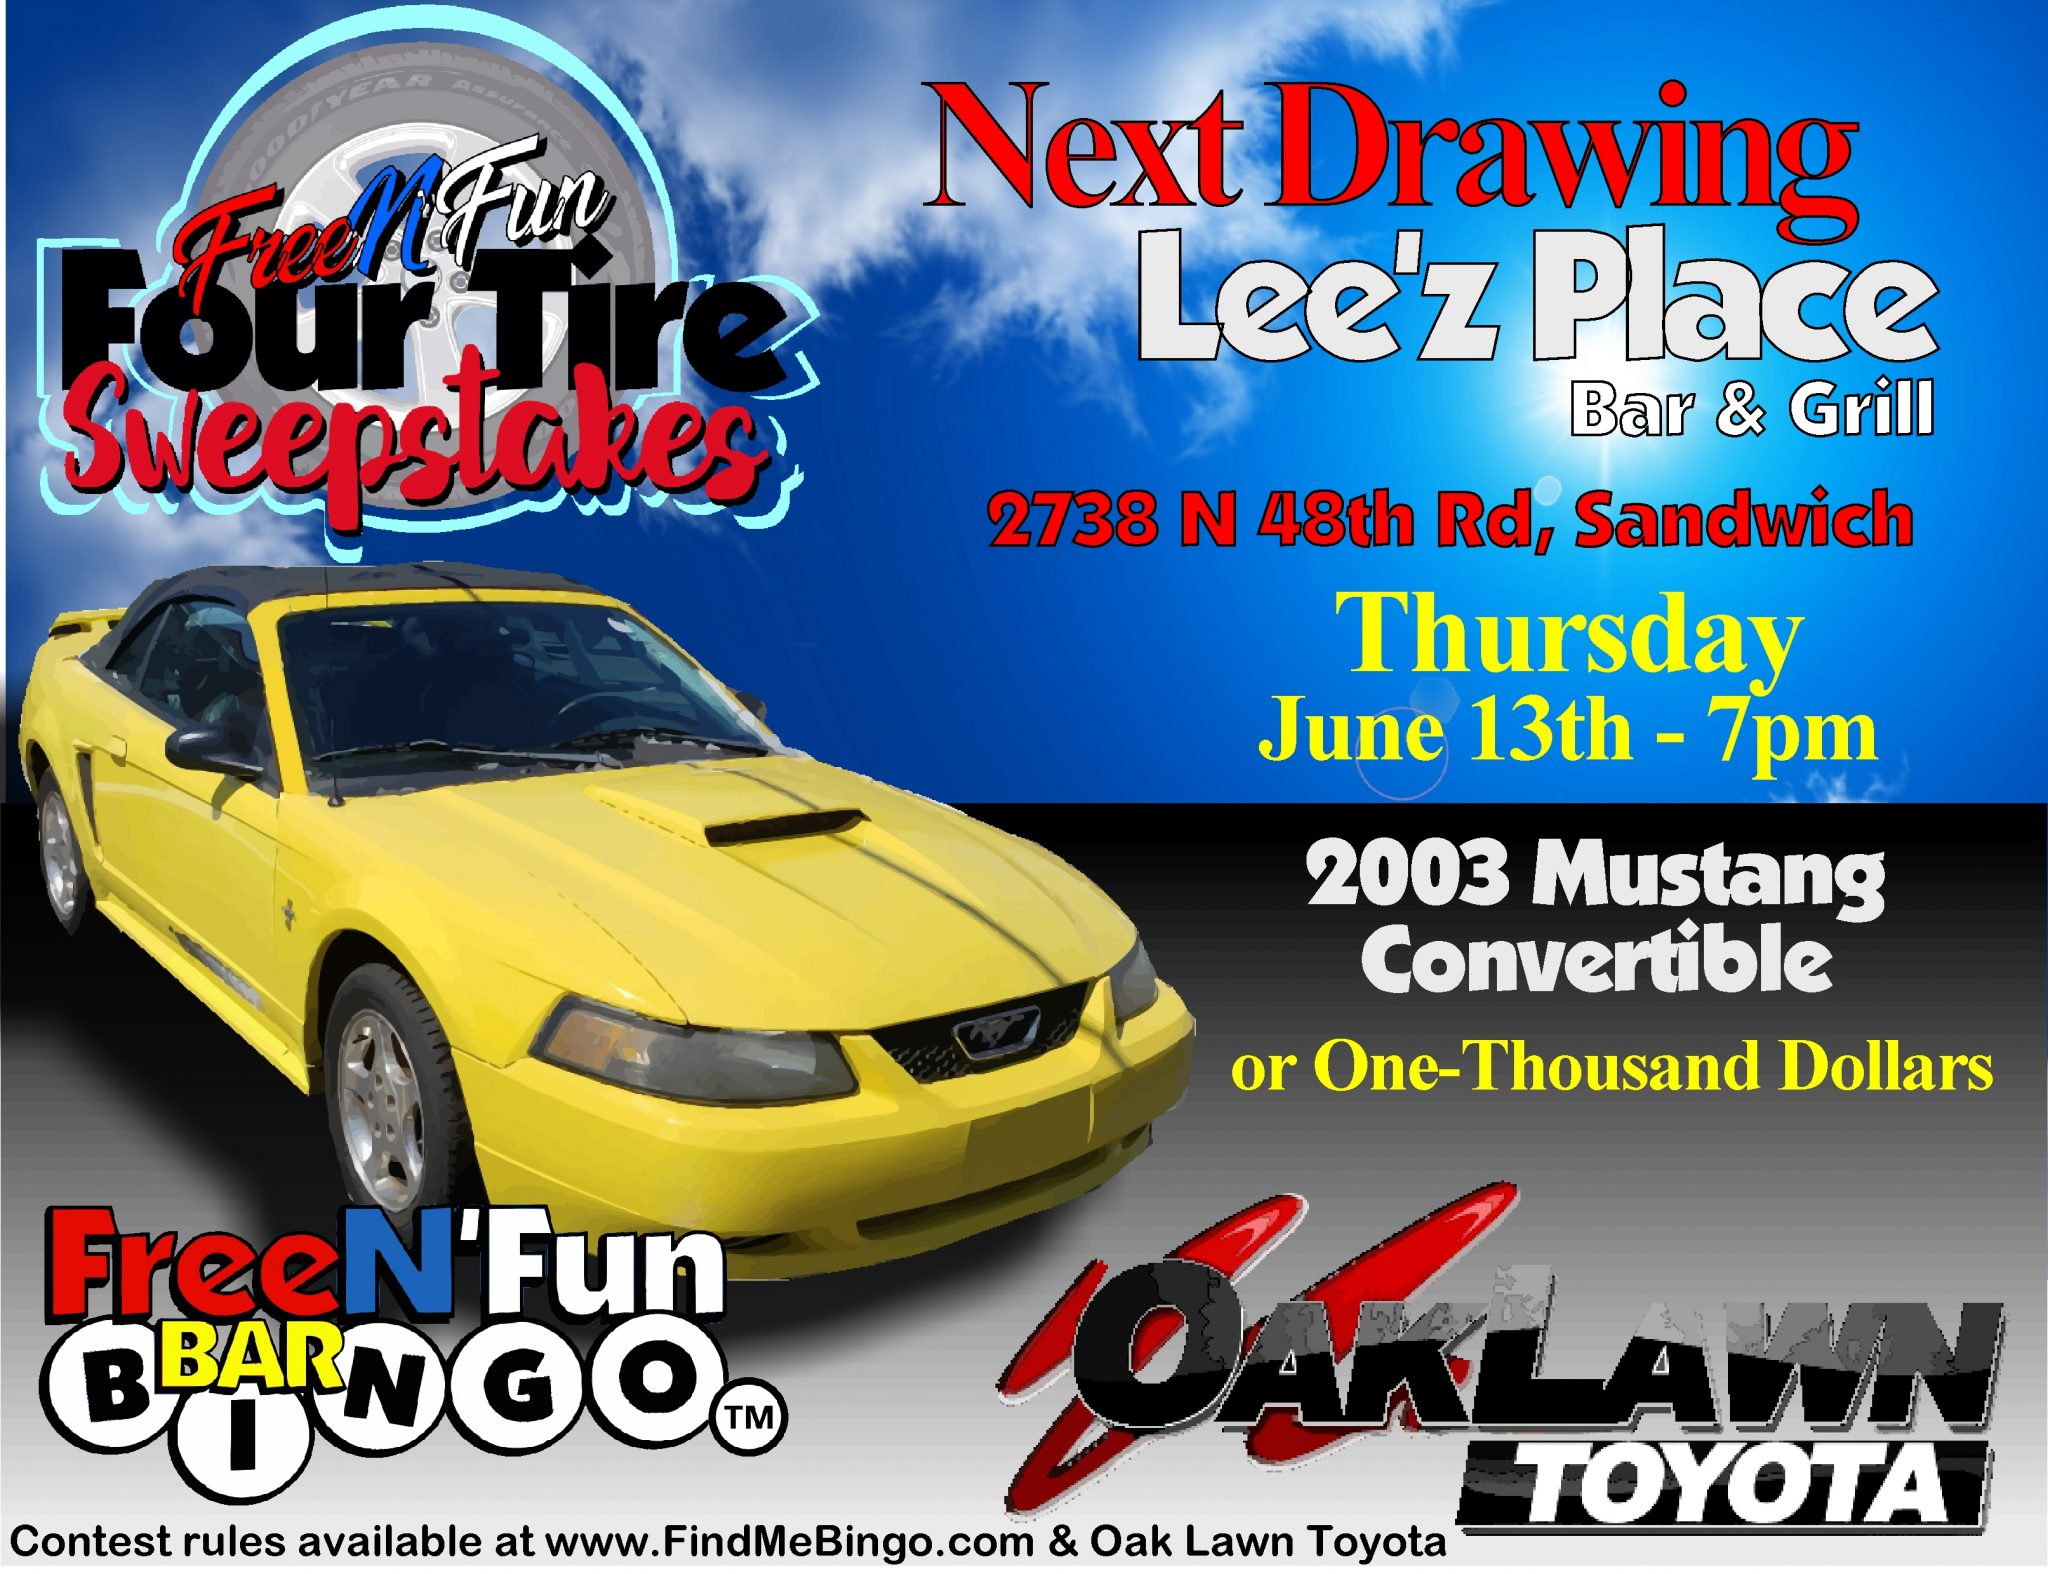 Lee'z Place Bar and Grill, 2738 N 48th Rd, Sandwich, IL 60548 Thursday June 13th 7pm